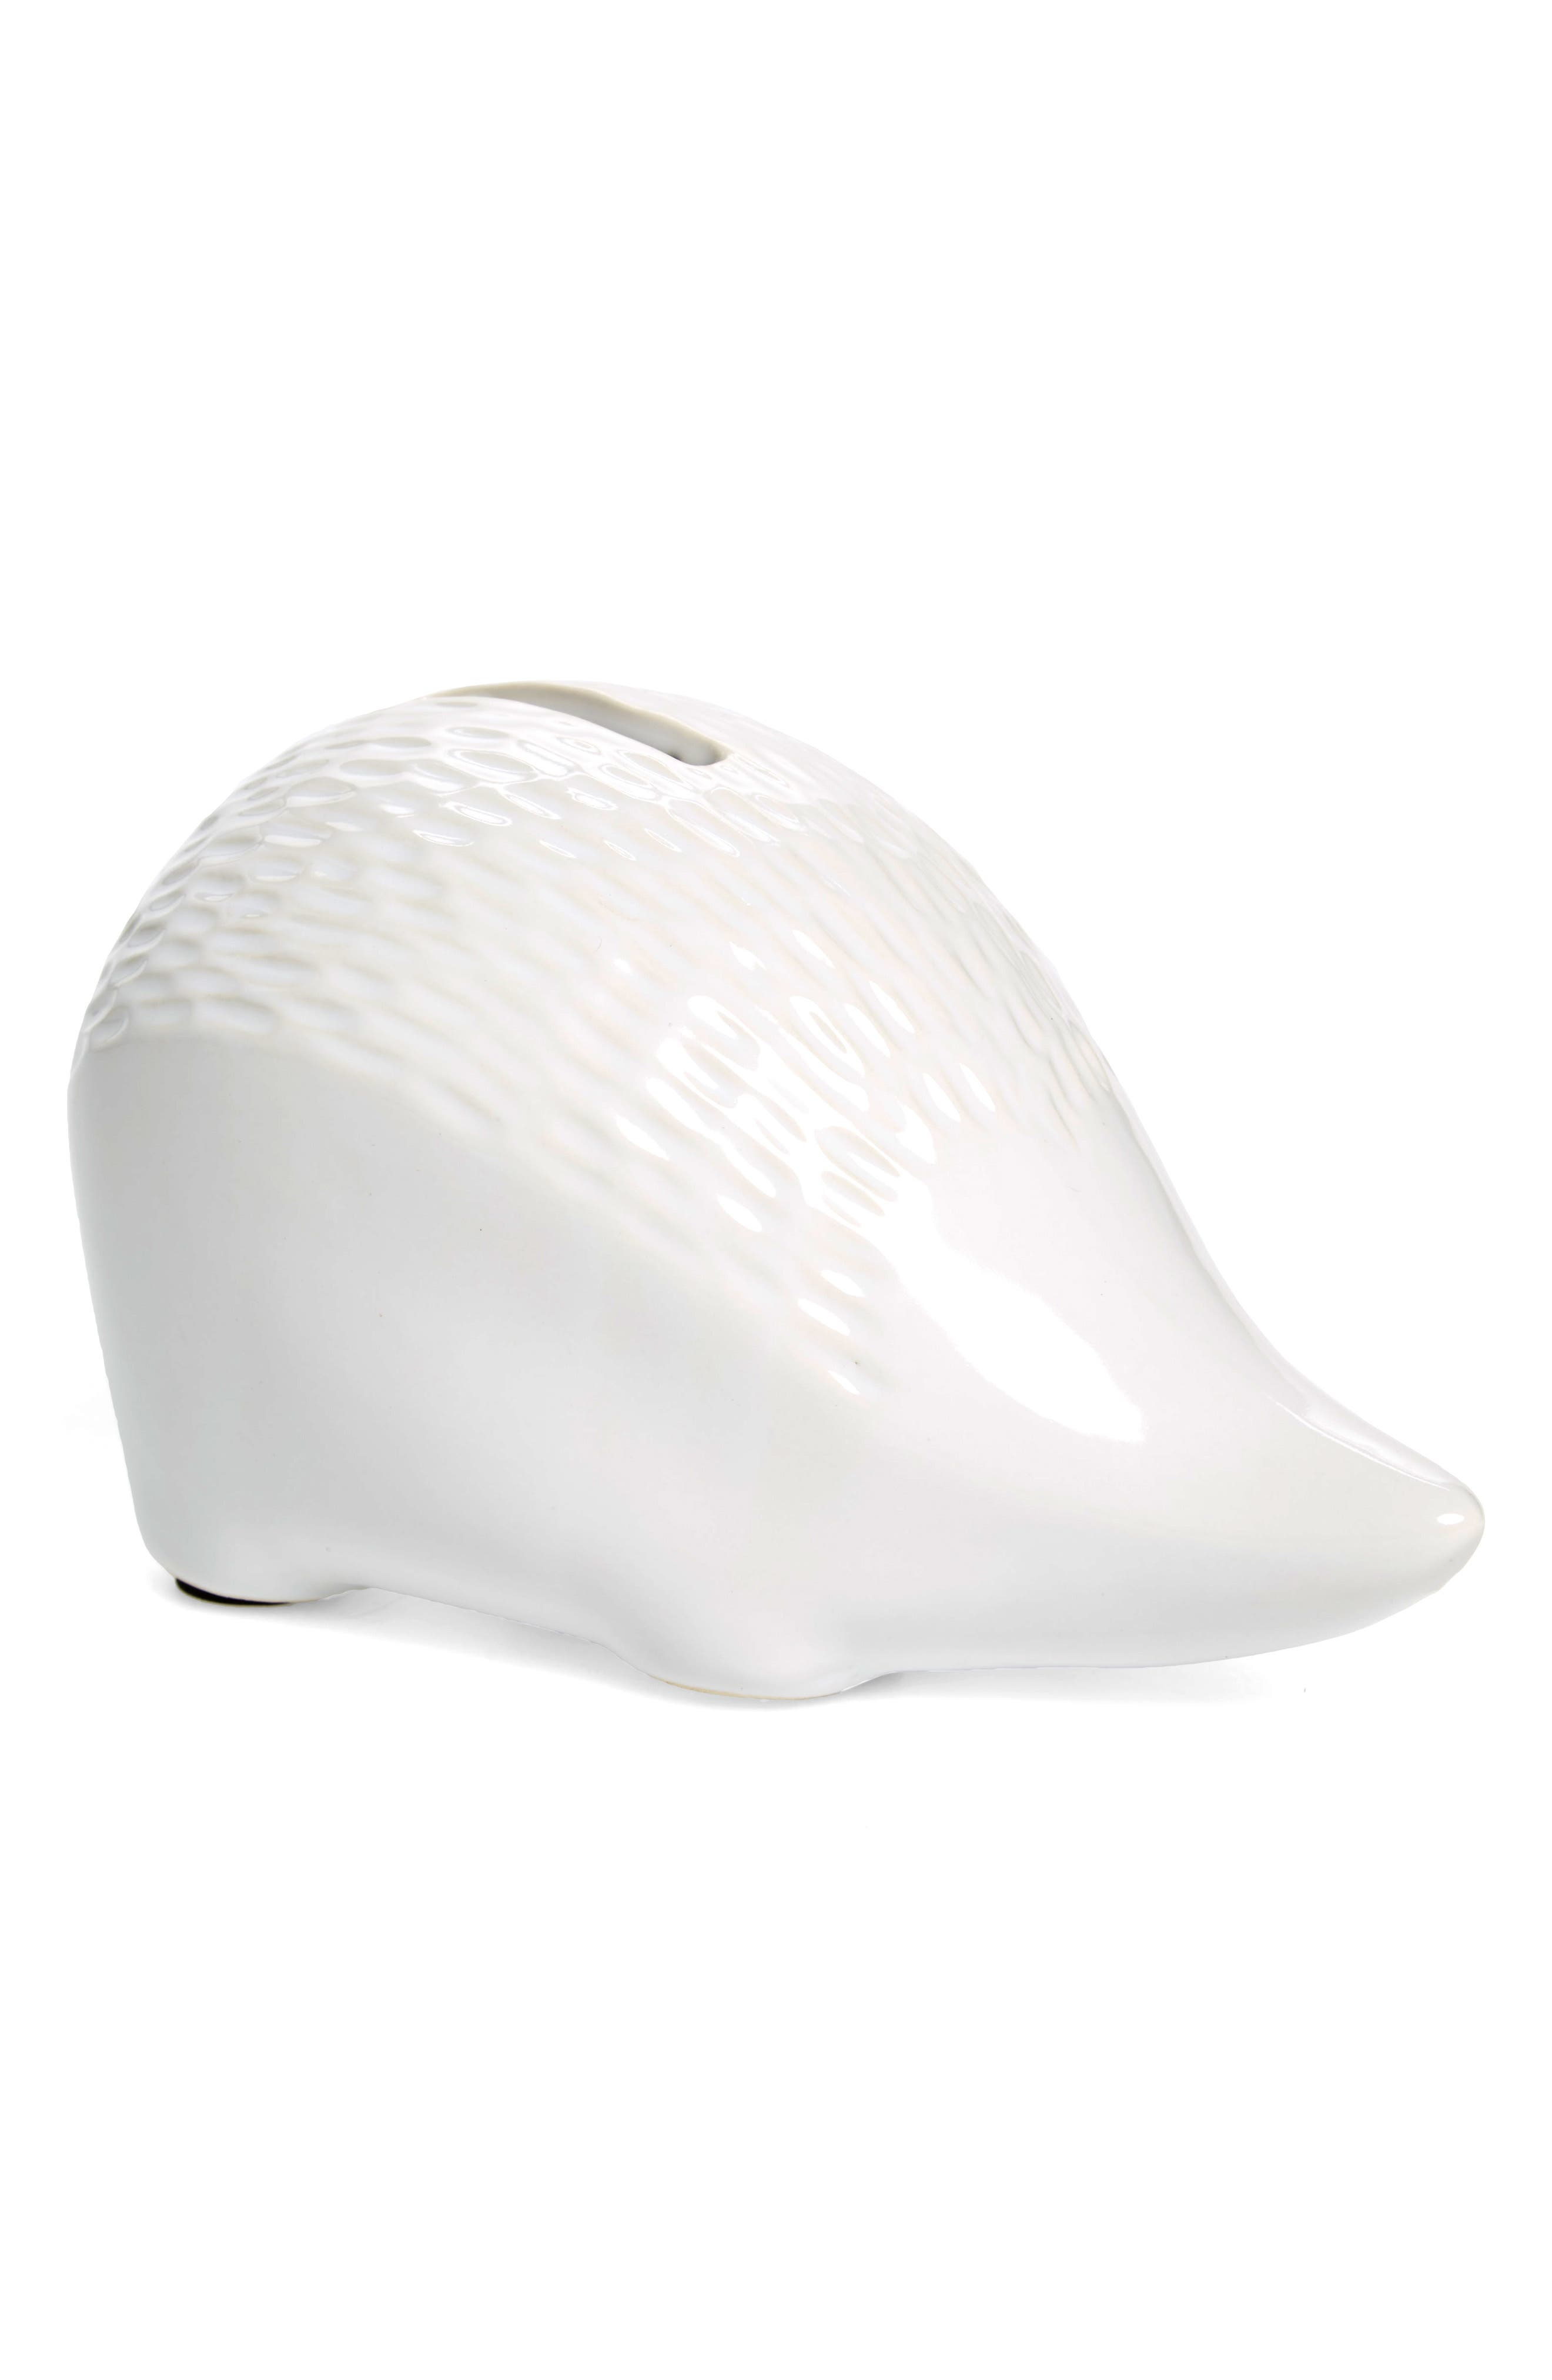 Harry the Hedgefund Coin Bank,                         Main,                         color, White